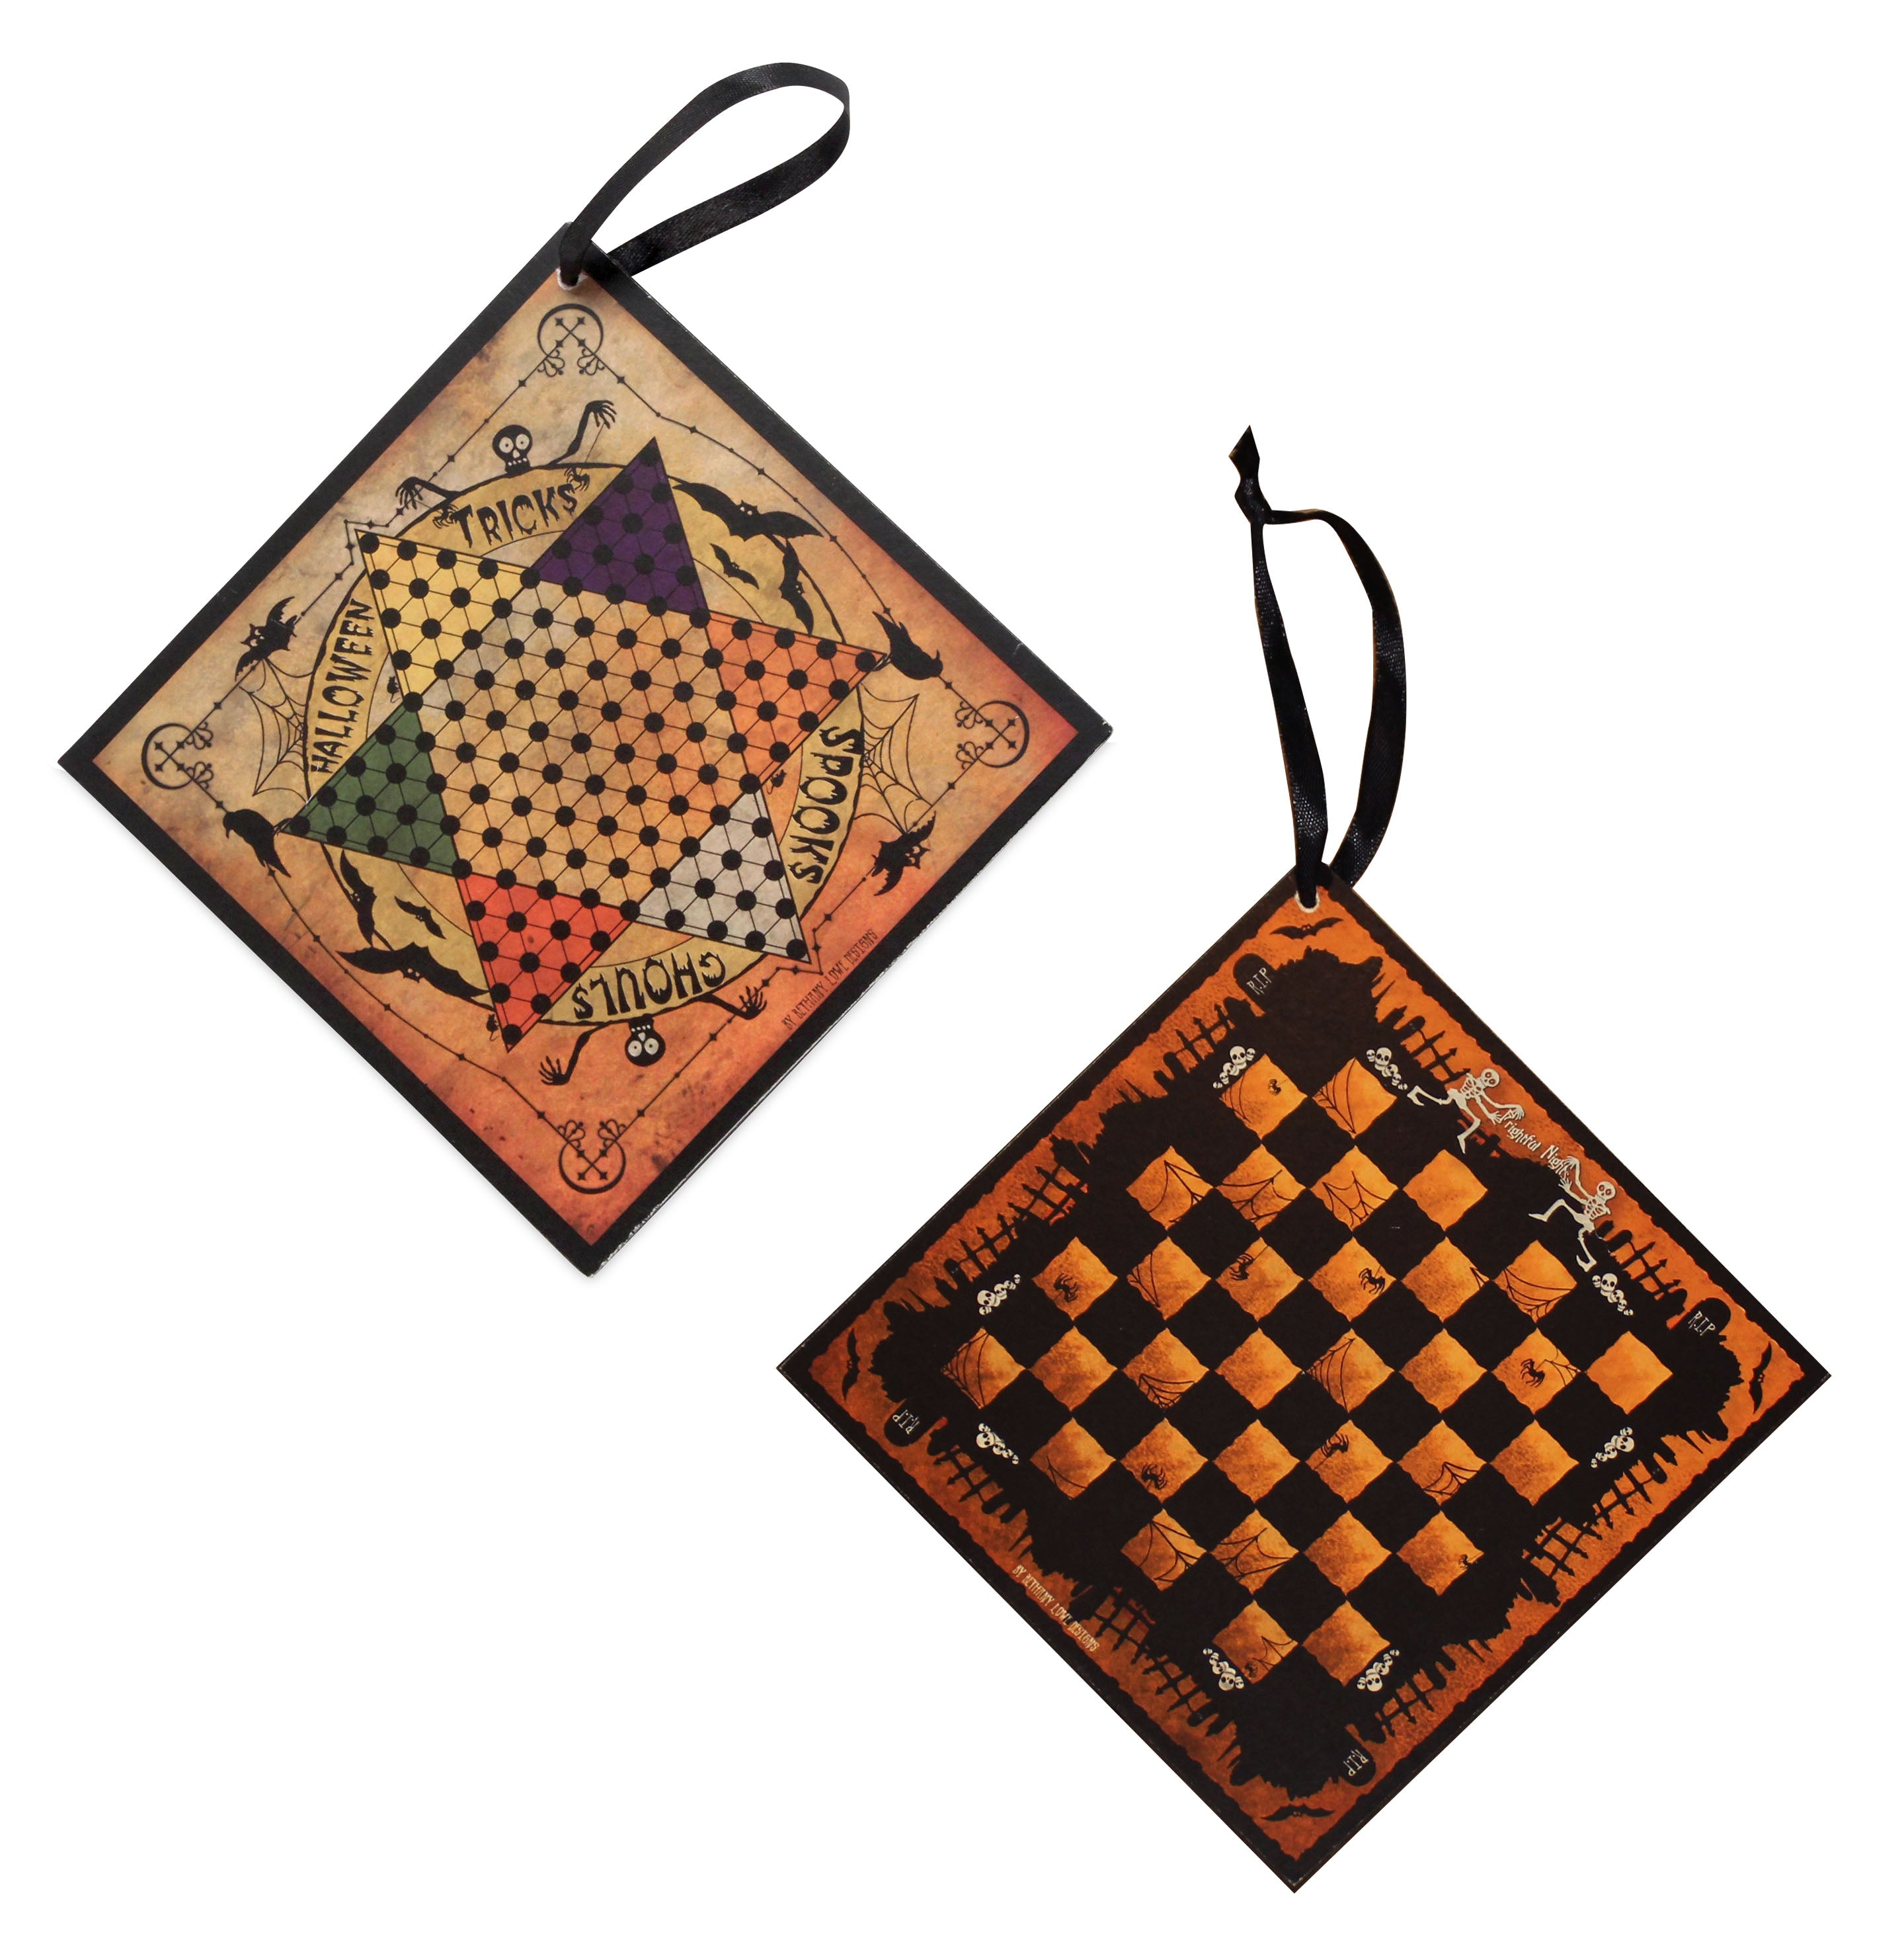 Halloween Gameboard Ornaments by Bethany Lowe